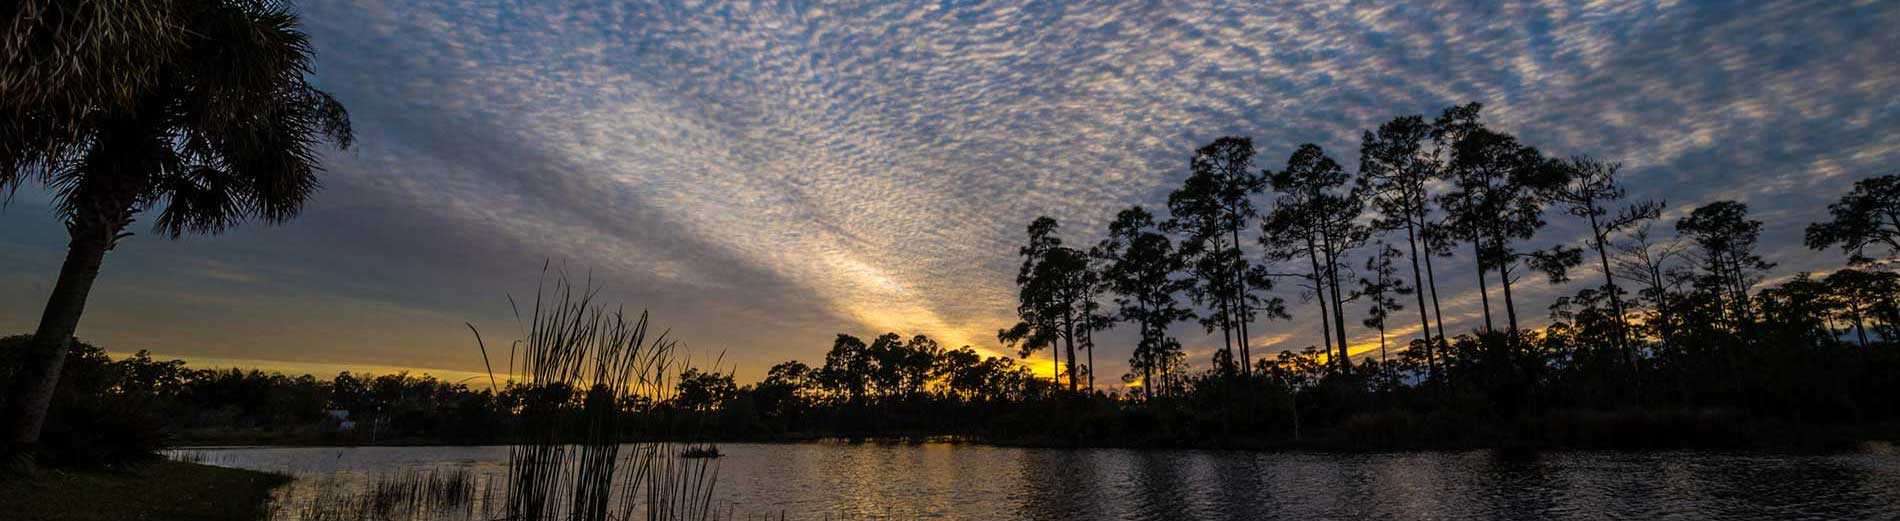 Photo shows Florida wetlands